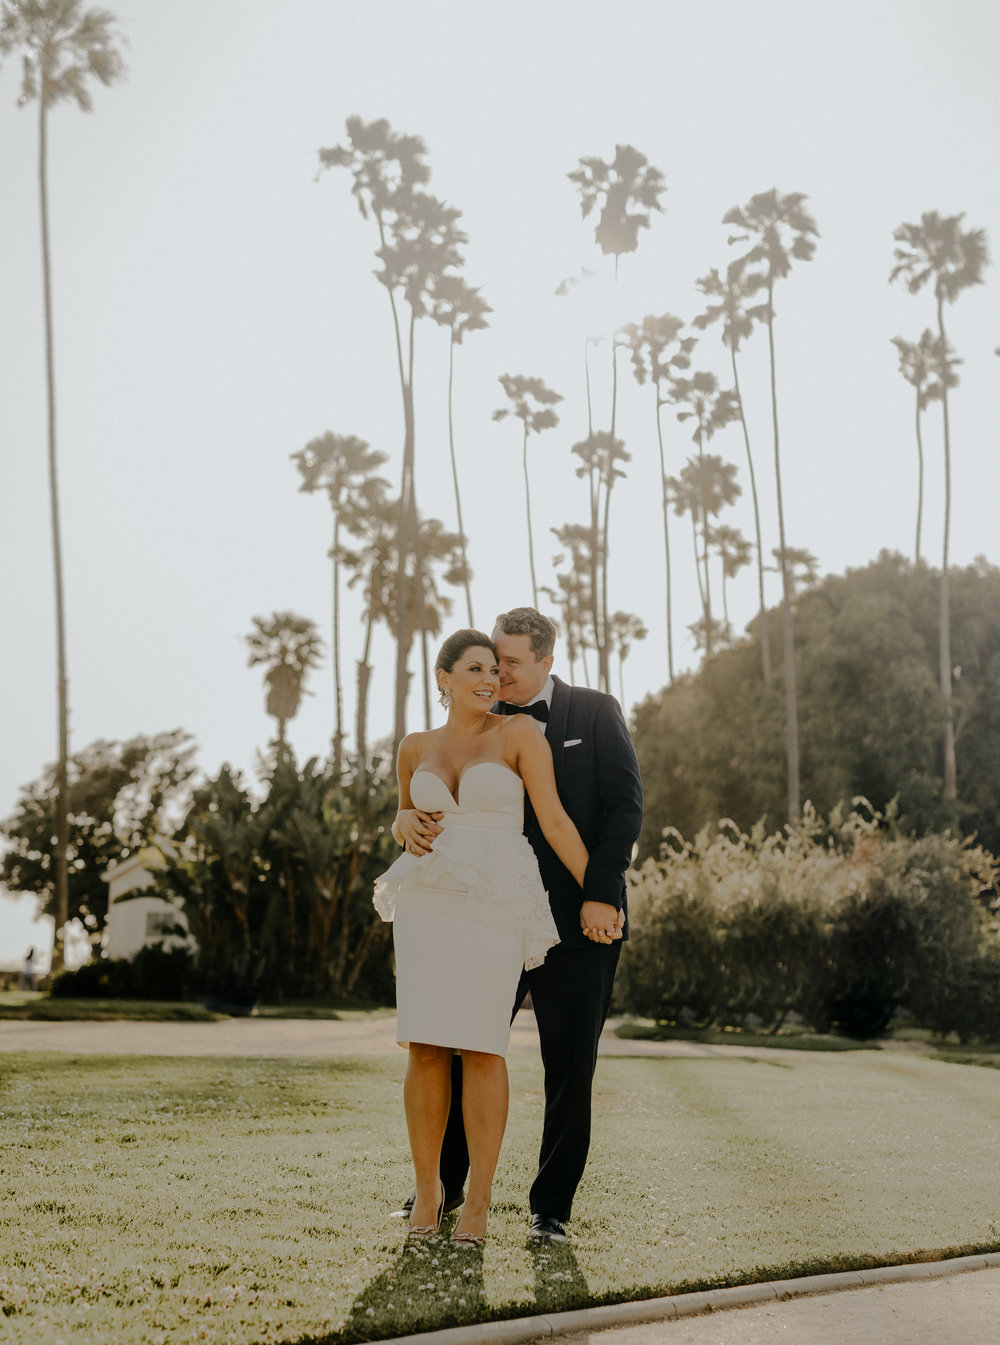 los angeles wedding photography - L.A. elopement - santa monica - IsaiahAndTaylor.com-1.jpg